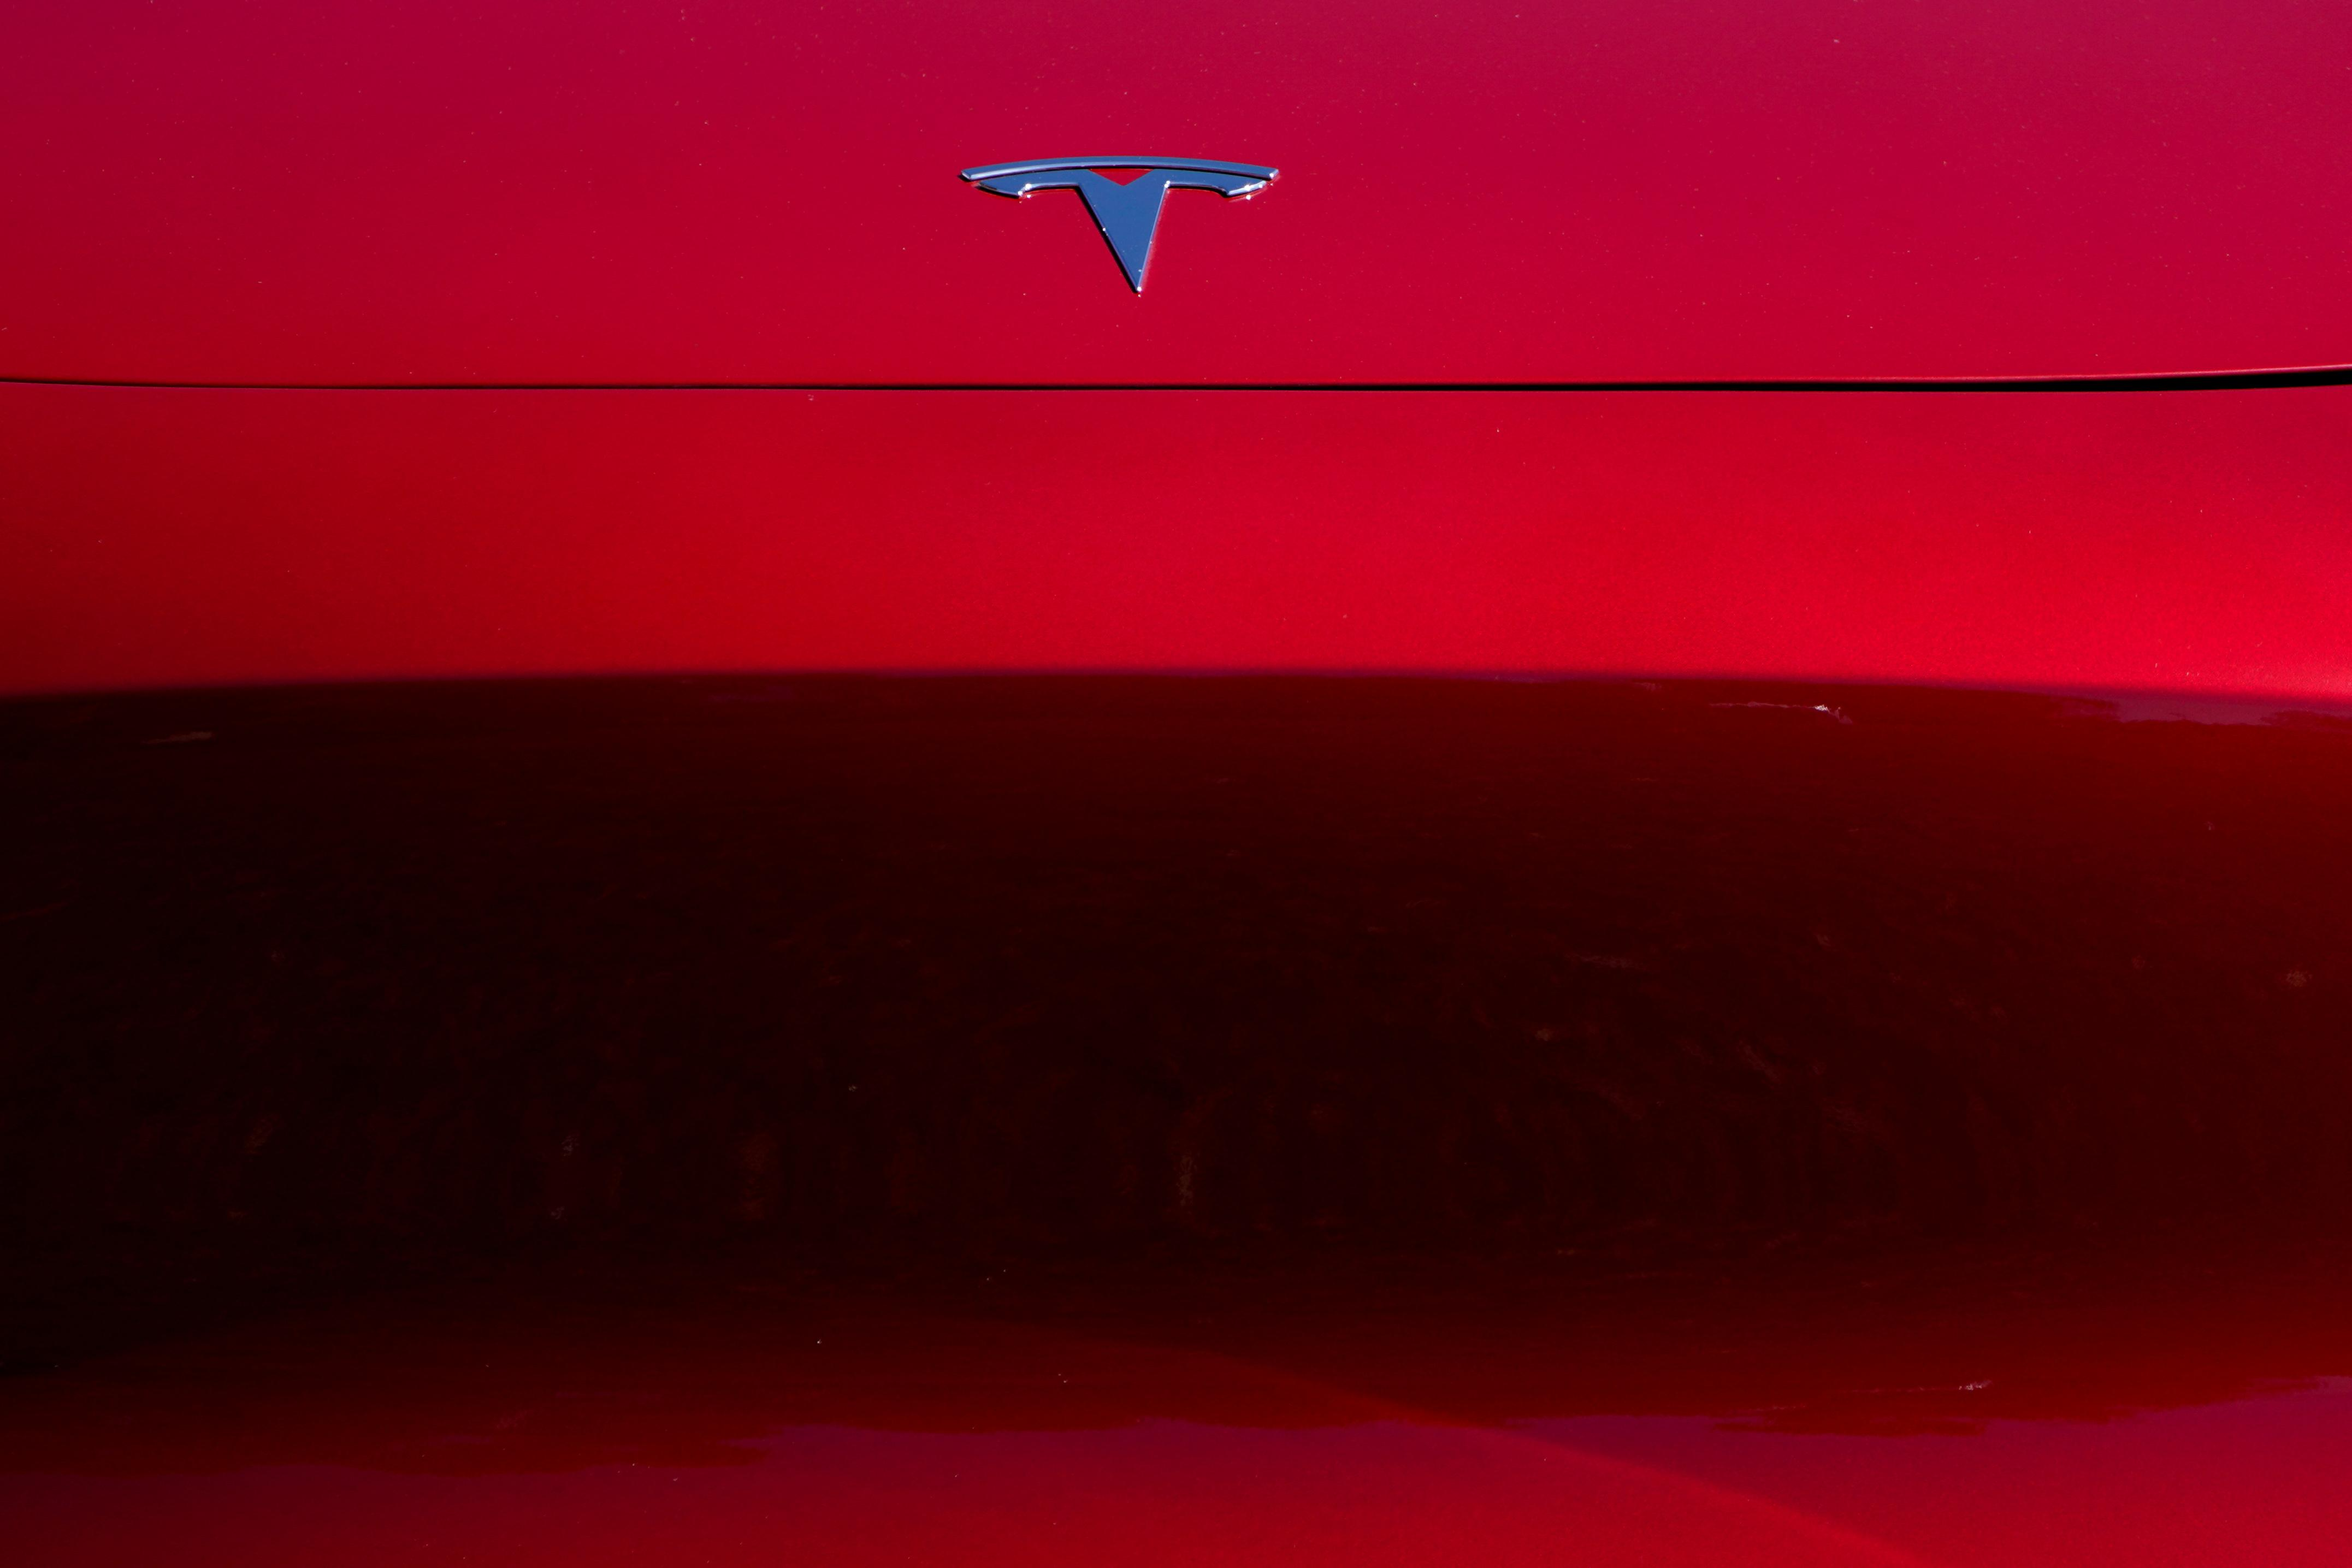 Consumer Reports calls Tesla automated parking 'glitchy'